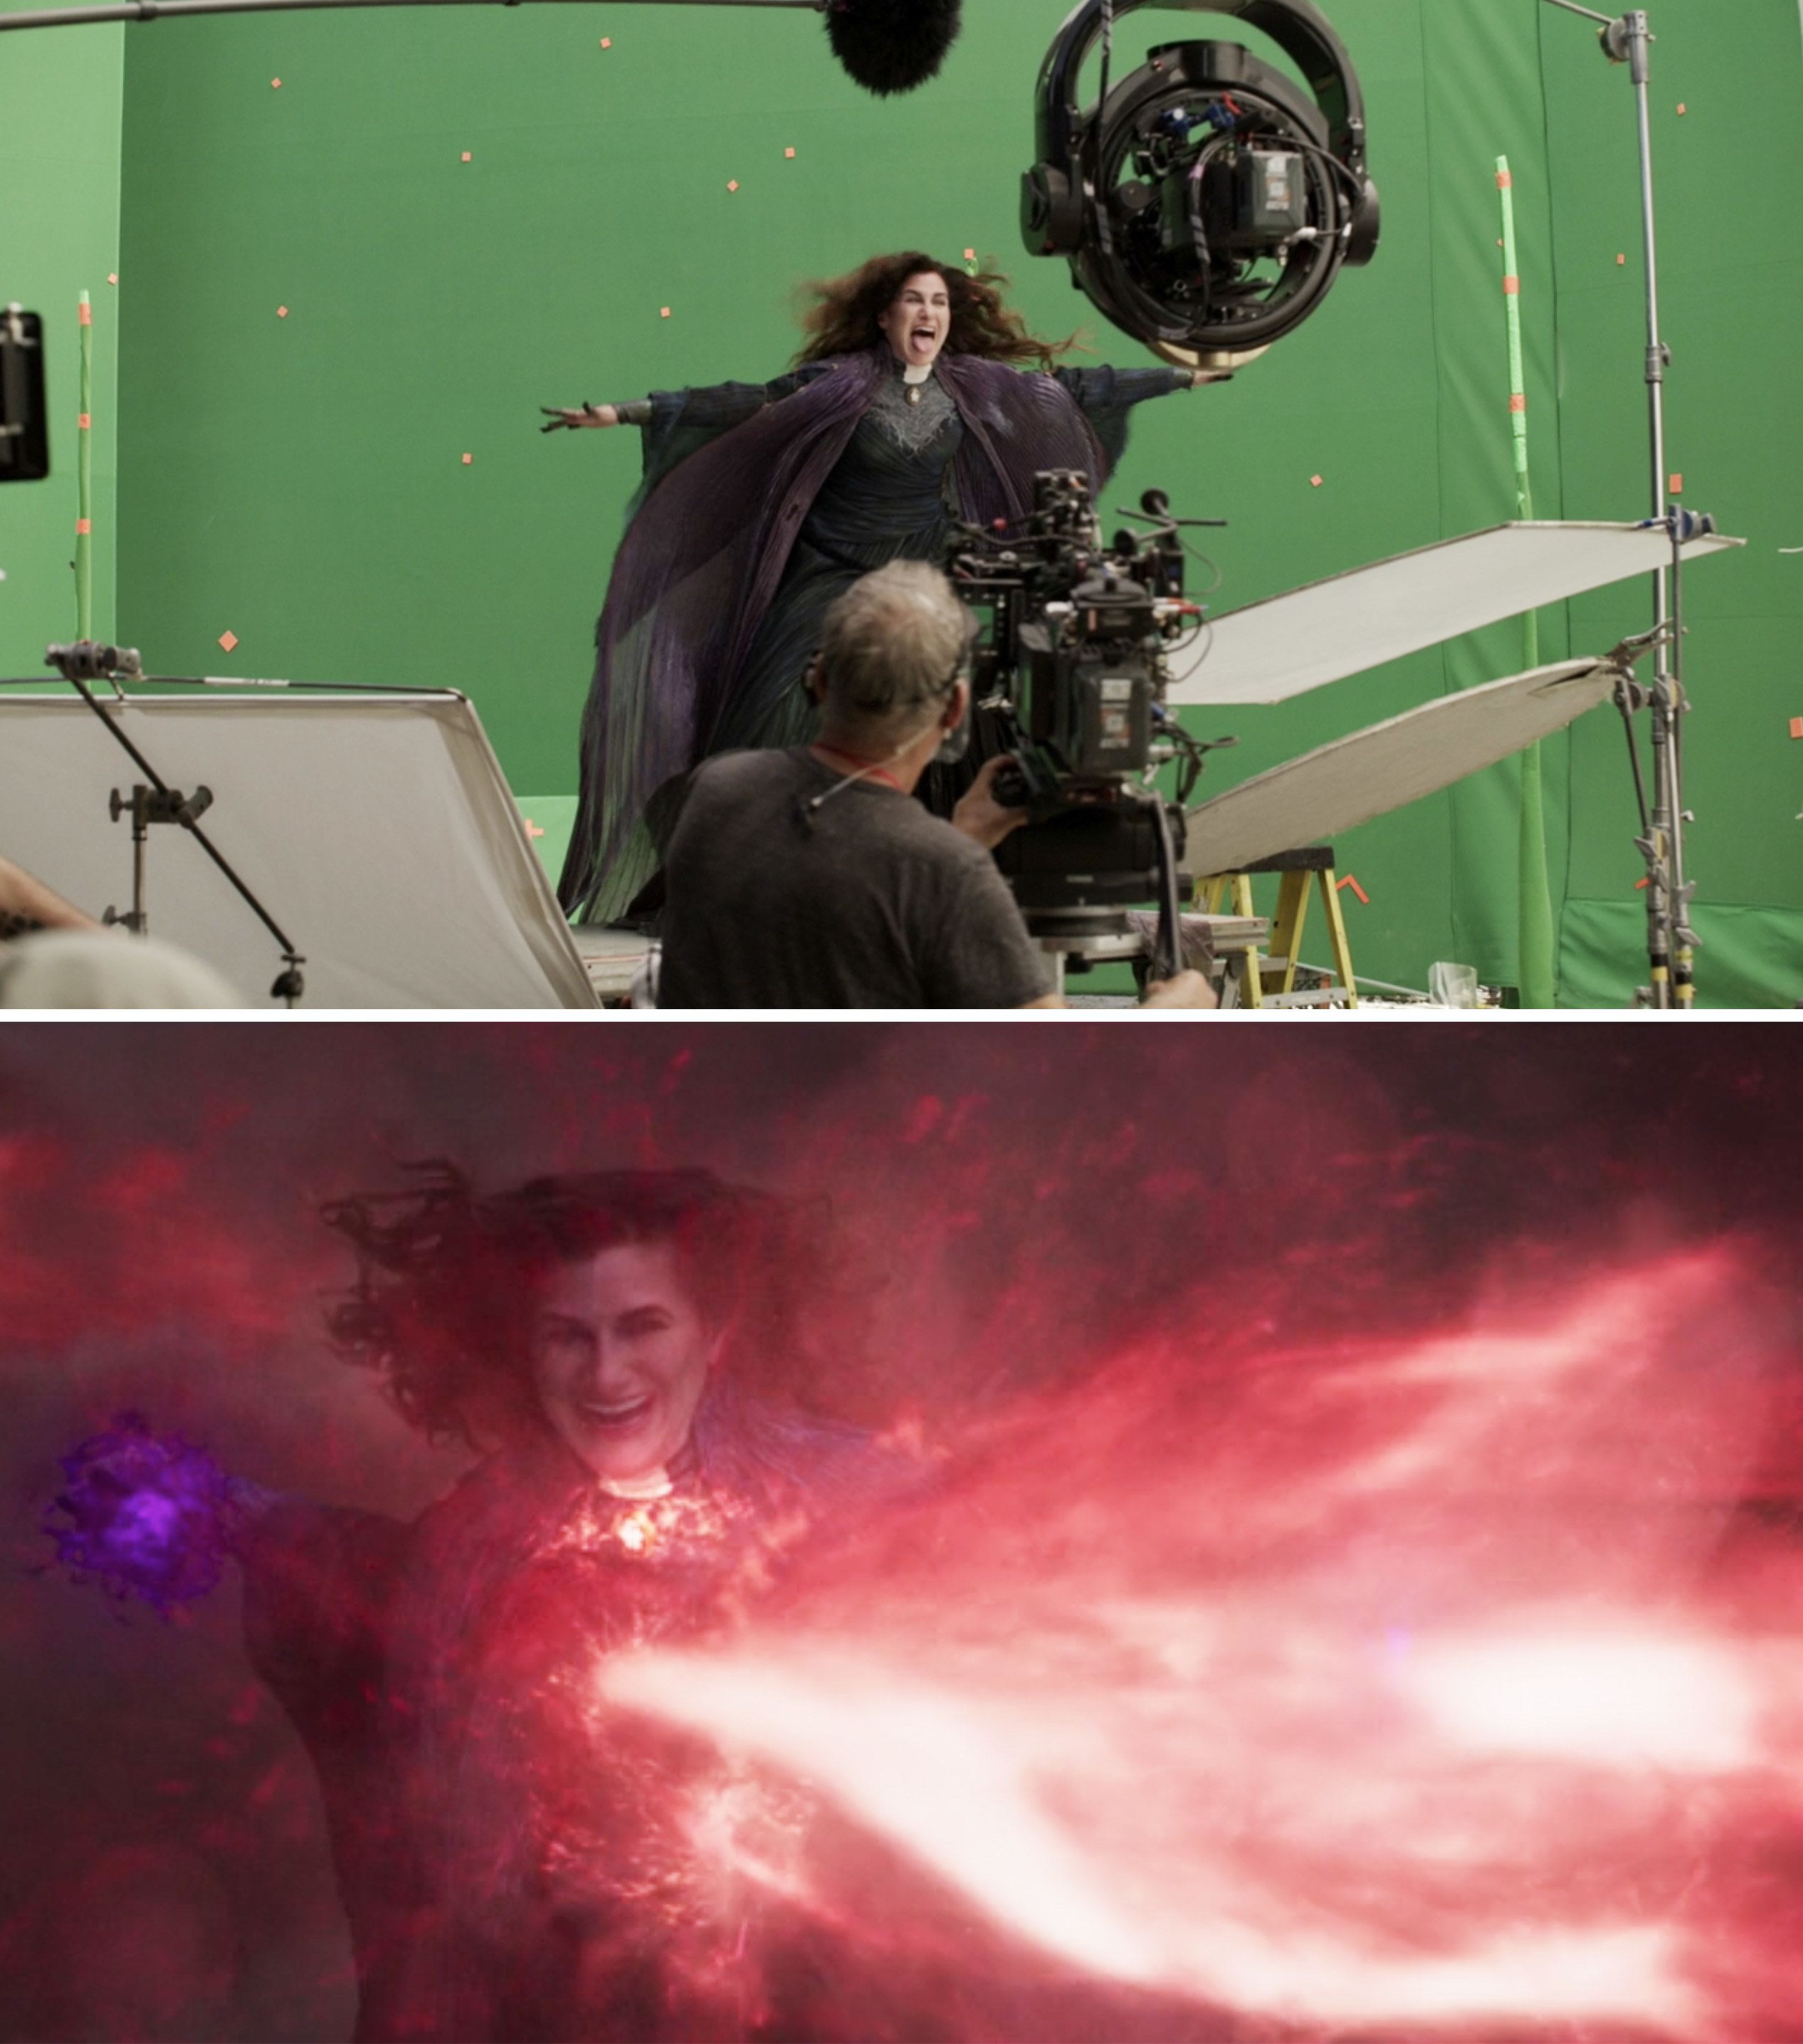 Kathryn Hahn on a green screen vs the final shot with visual effects